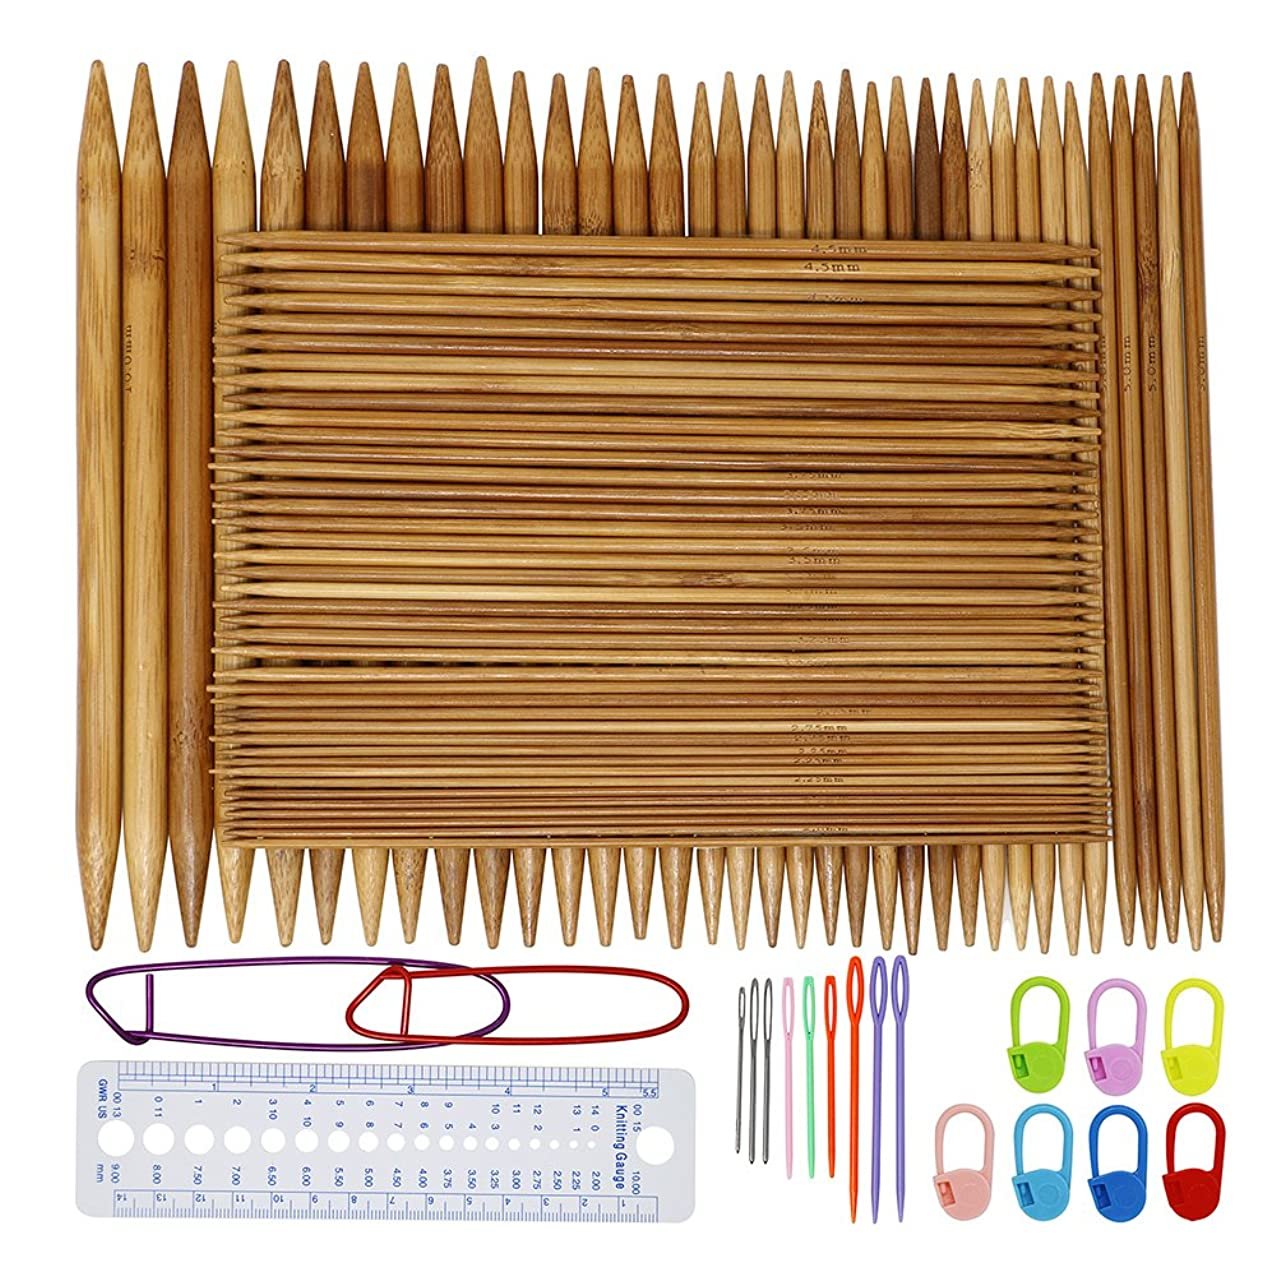 Onshine Knitting Needles Set 75Pcs 8 Inch Length Bamboo Double Pointed Knitting Needles 15 Sizes 2 mm - 10 mm with 45Pcs Exquisite Knitting Accessories